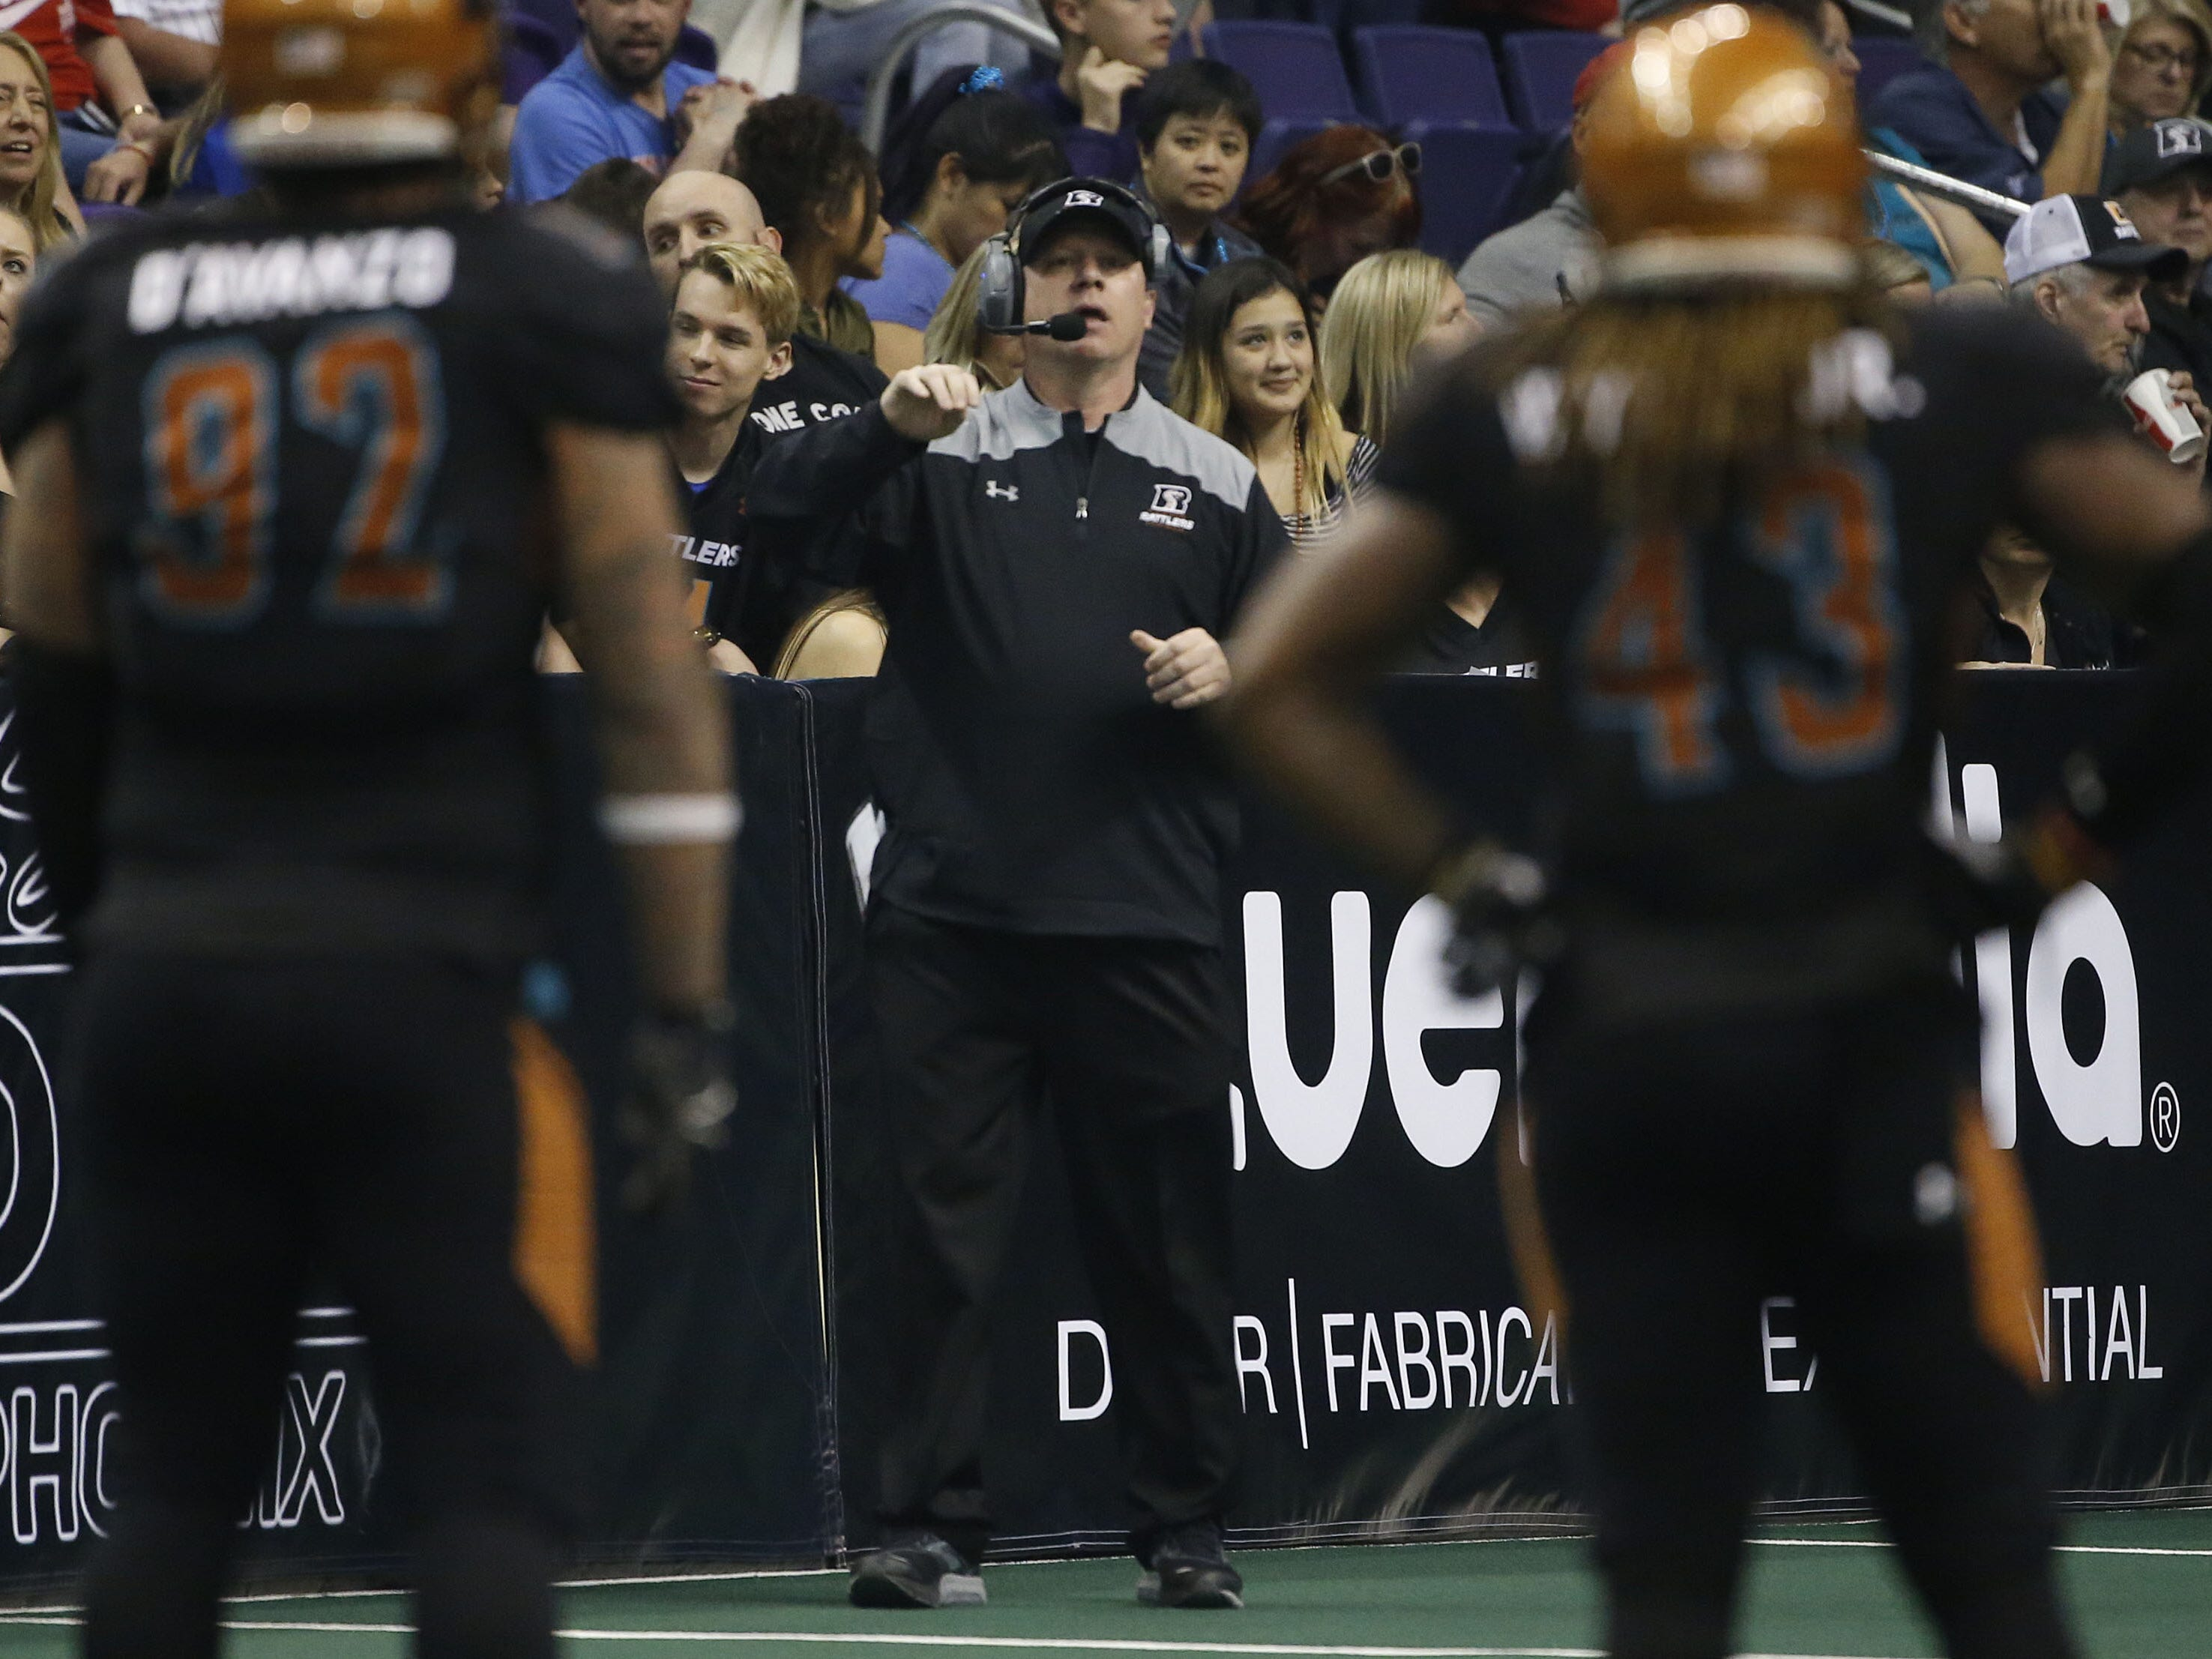 Rattlers' head coach Kevin Guy talks to his defense during the second half against the Sugar Skulls at Talking Stick Resort Arena in Phoenix, Ariz. on March 16, 2019.